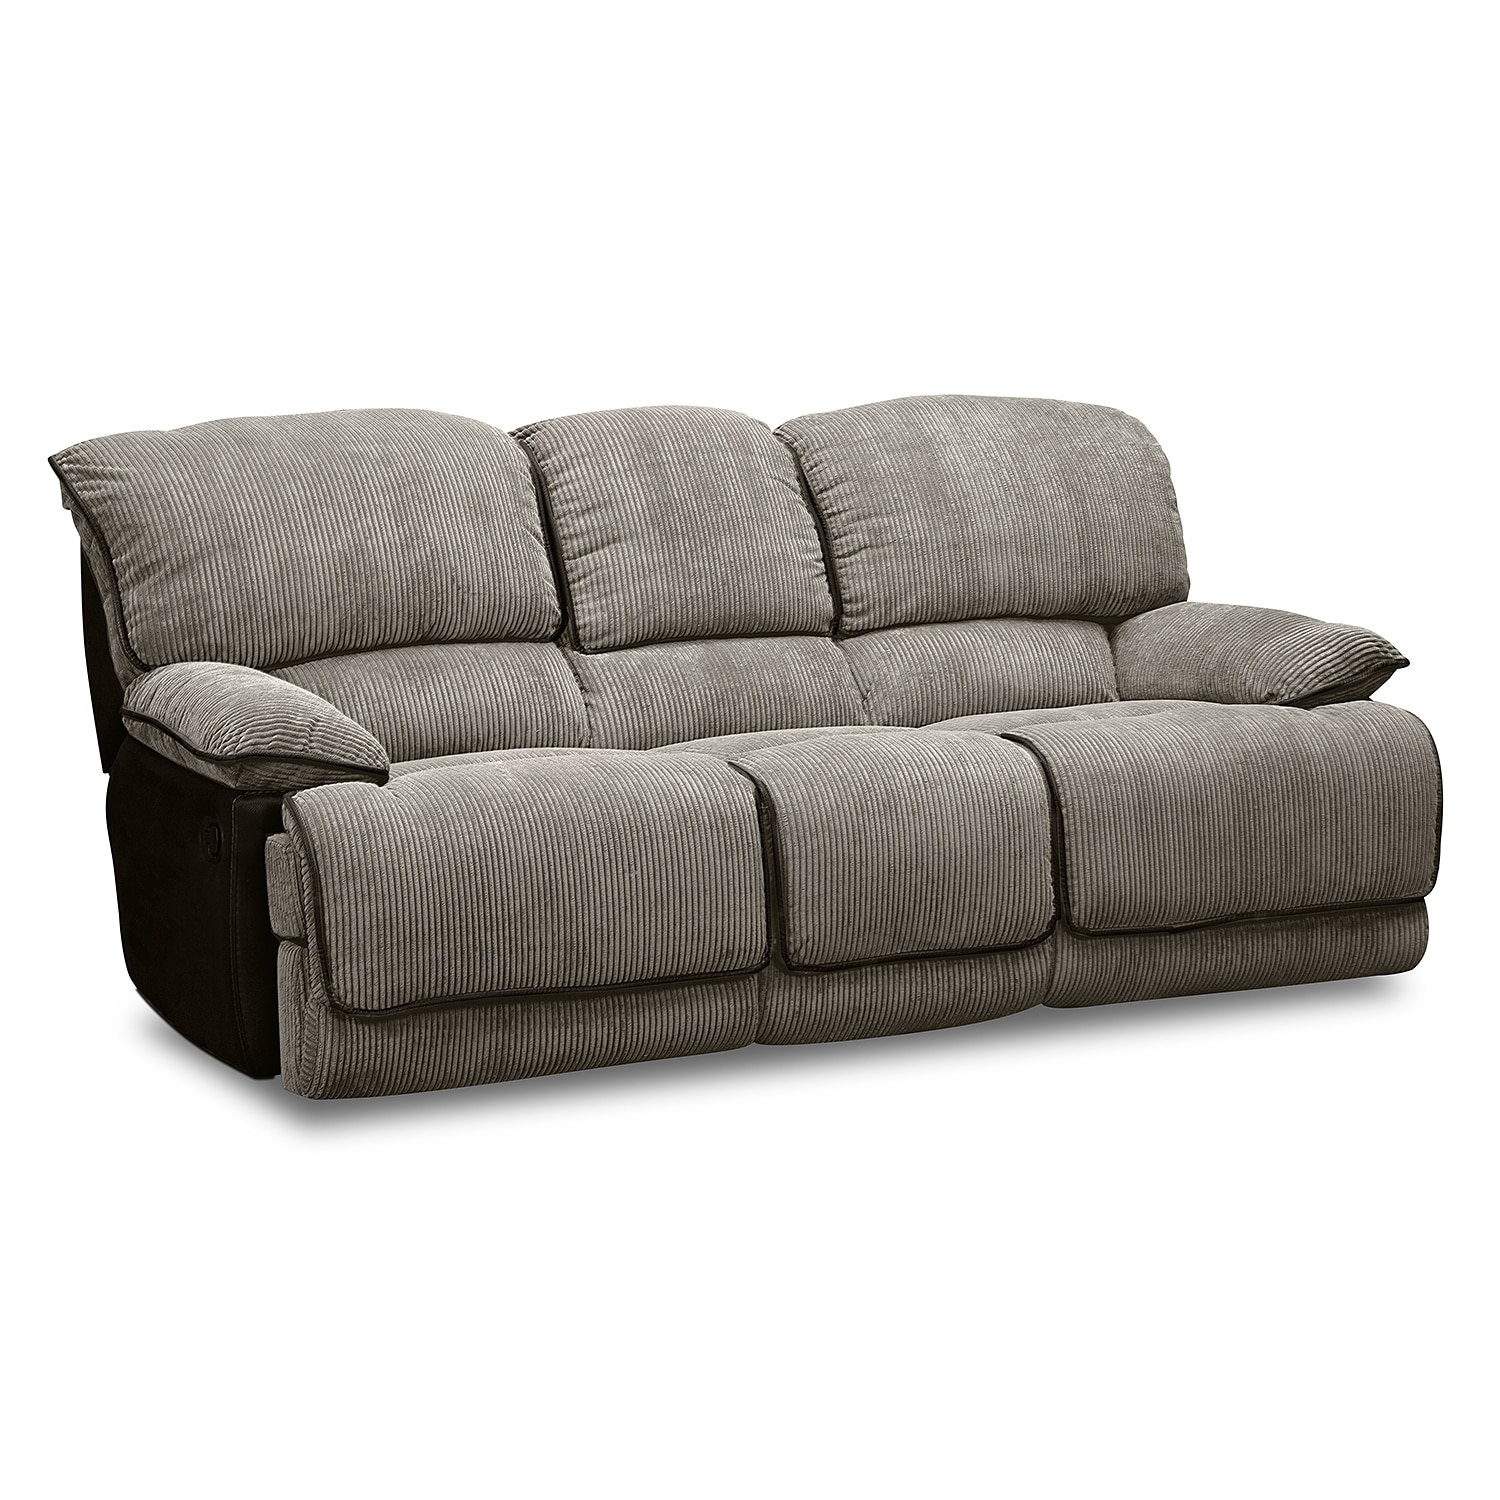 Living Room Furniture - Laguna II Dual Reclining Sofa